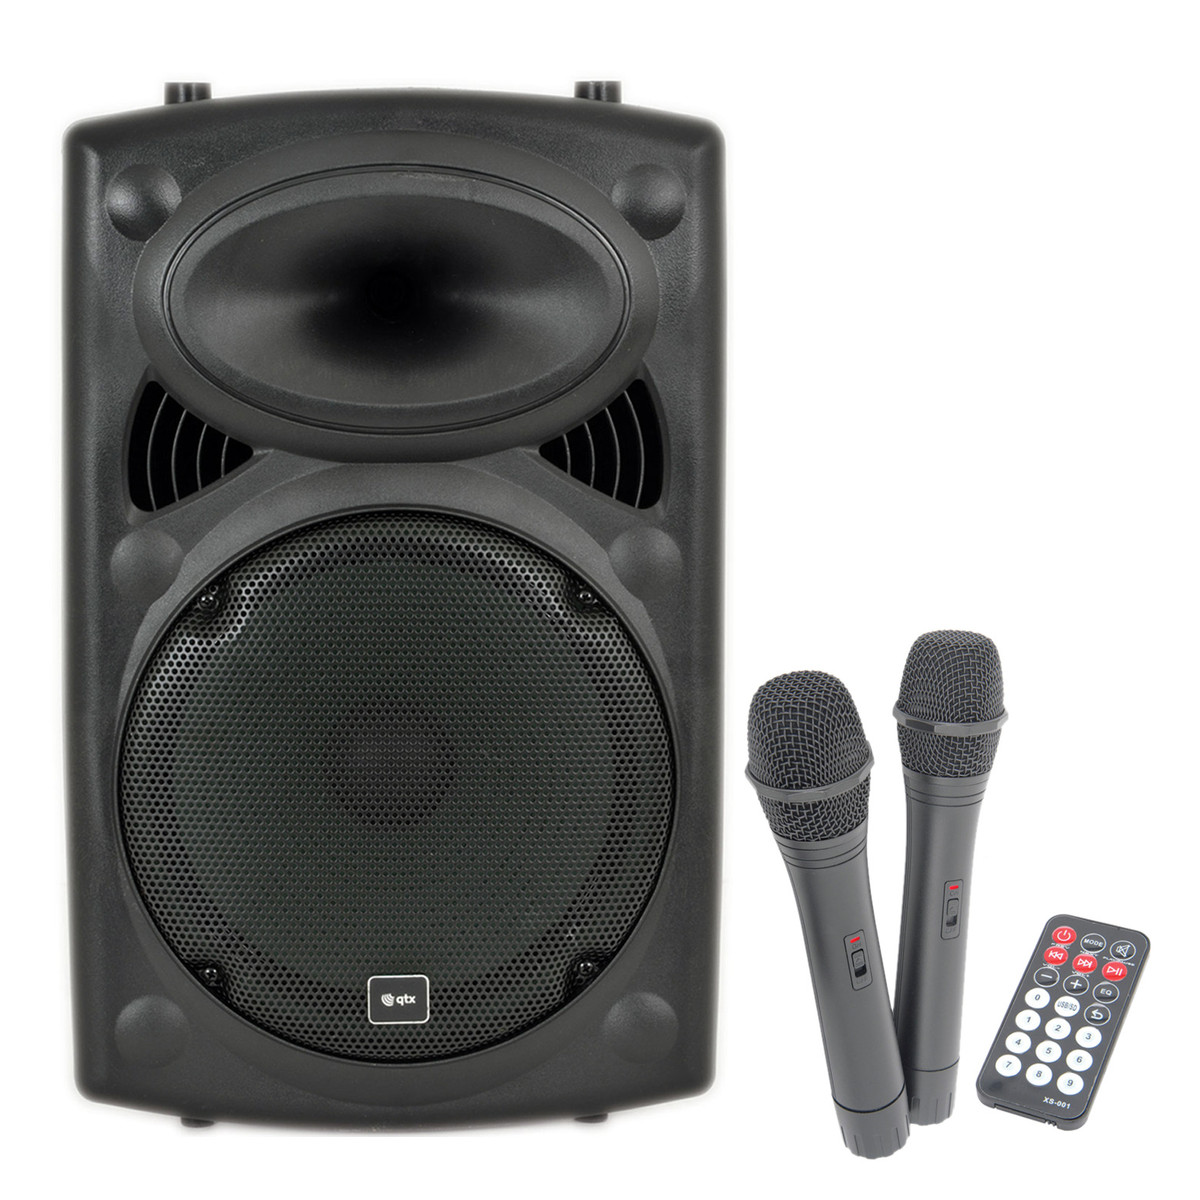 qtx sound qr12pa portable pa system with wireless mics b stock at gear4music. Black Bedroom Furniture Sets. Home Design Ideas